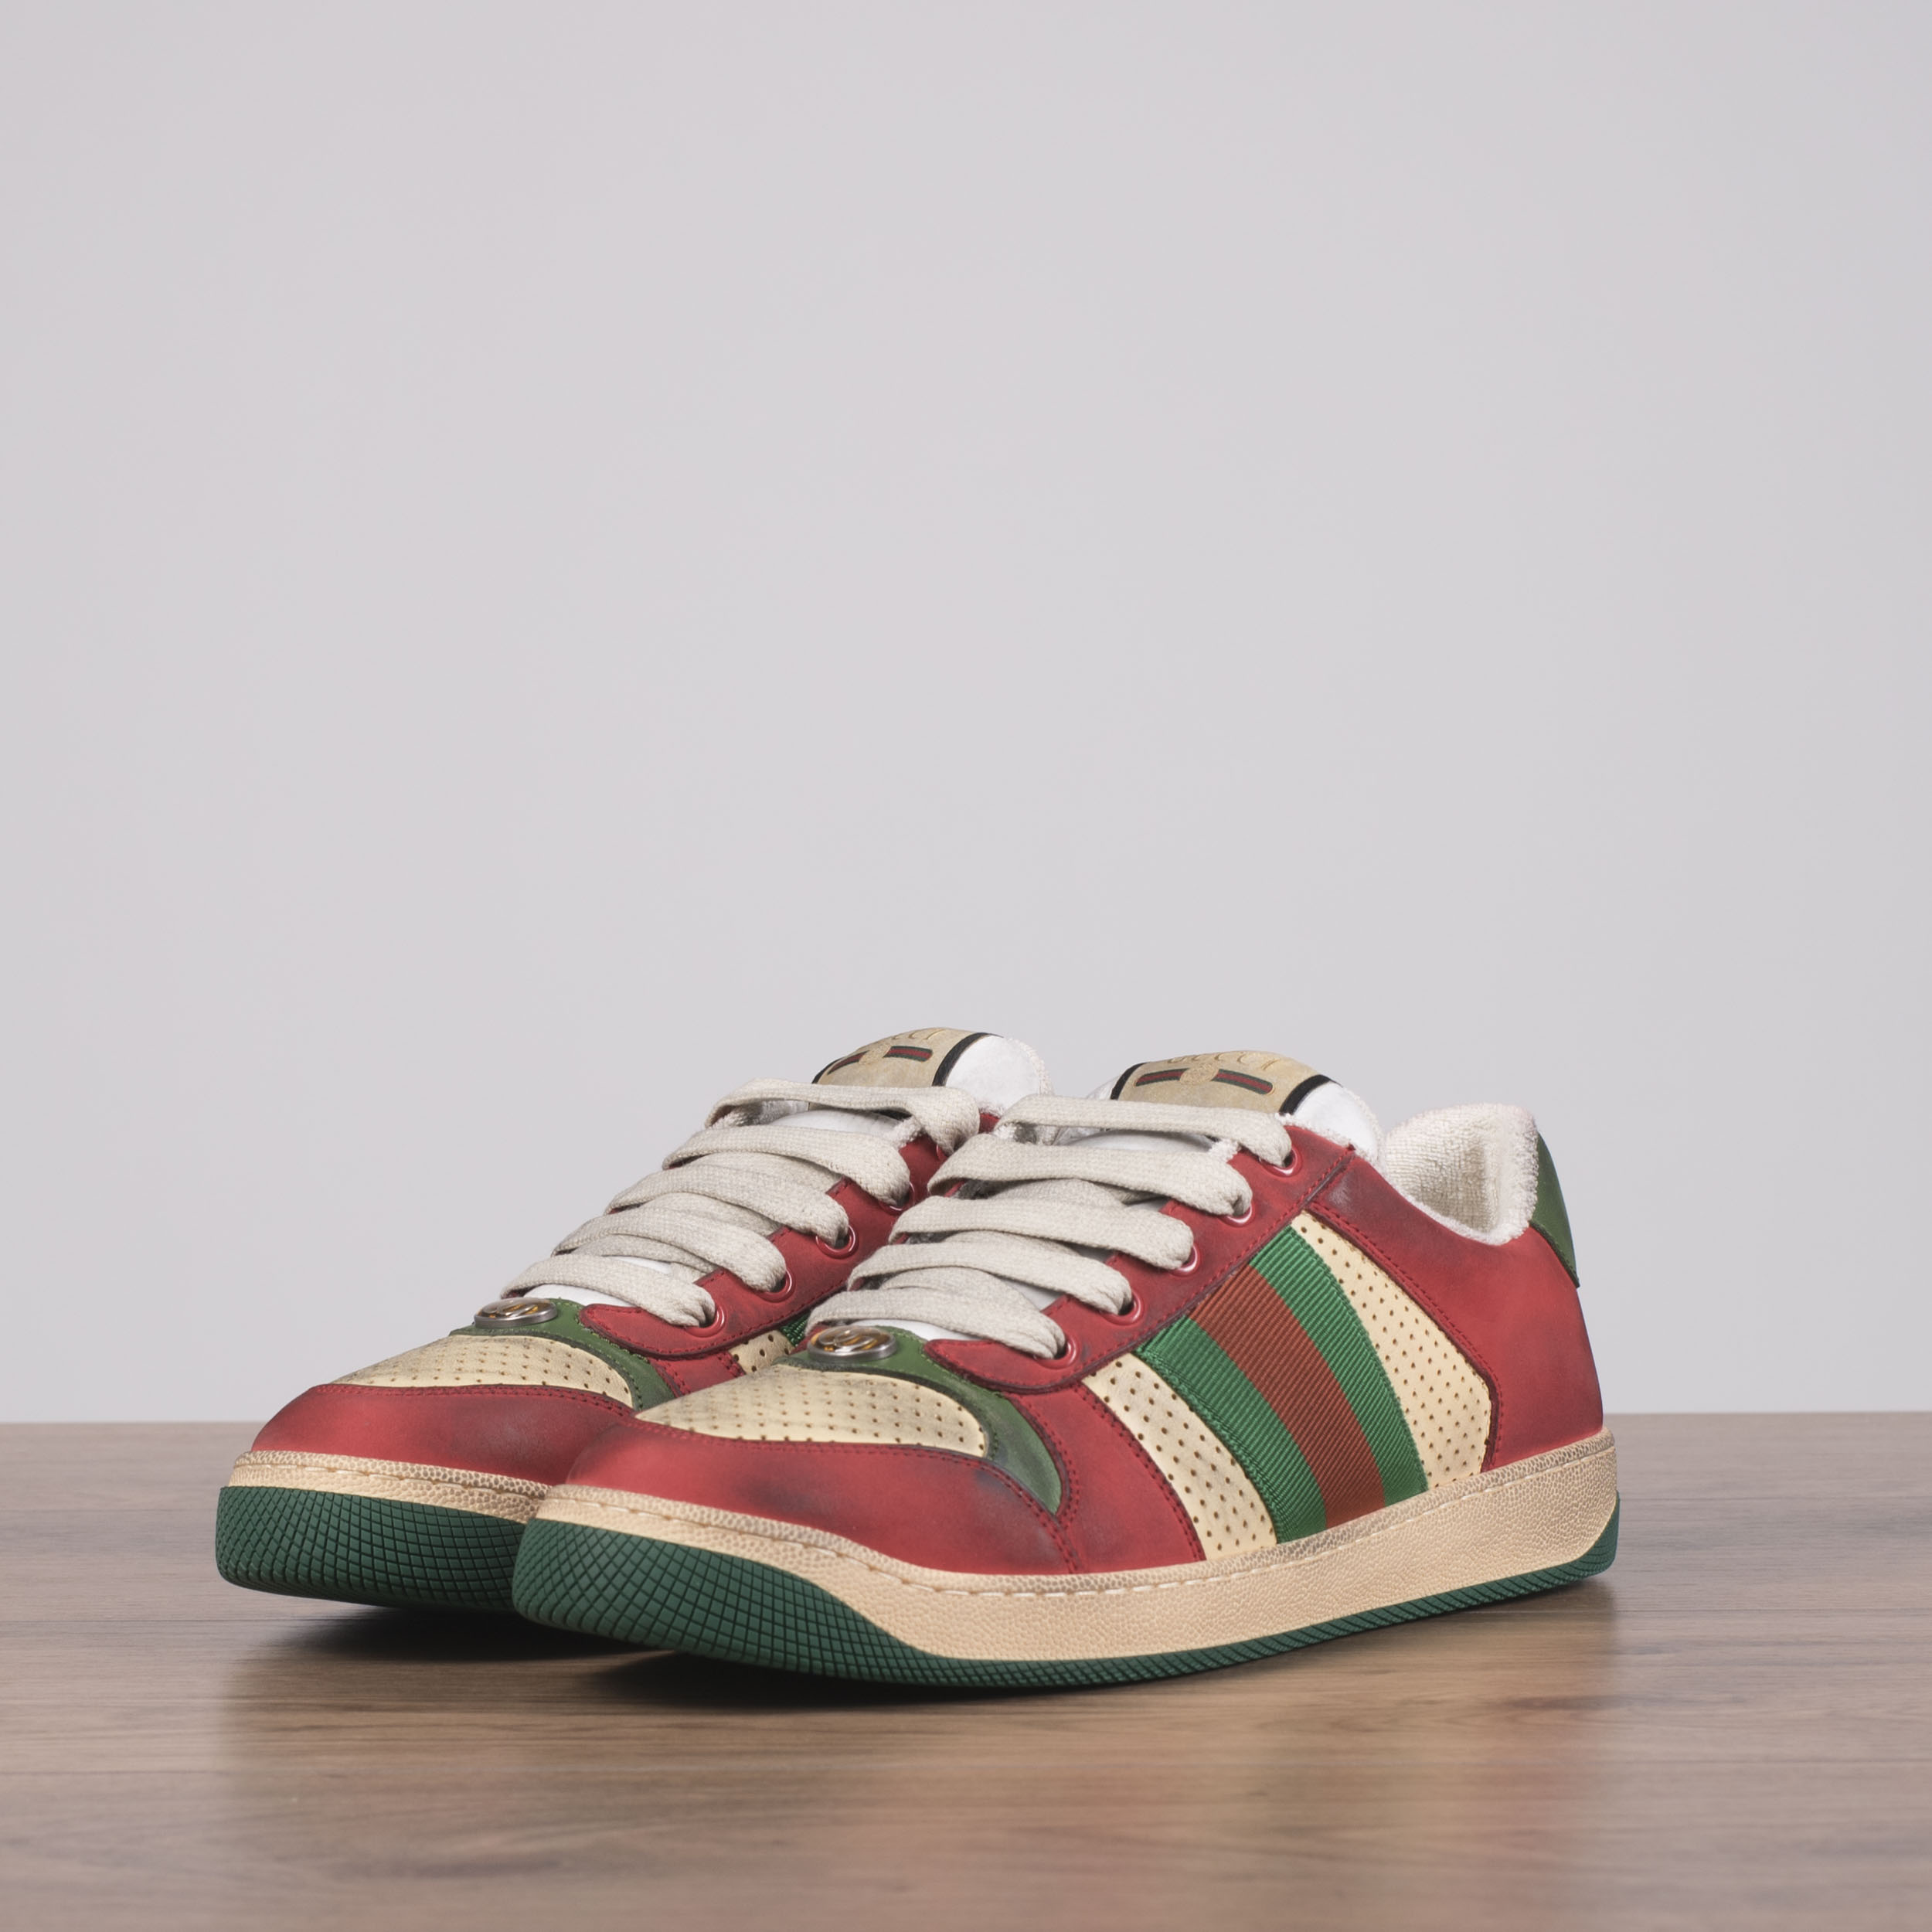 1940eb2871e Details about GUCCI 870  Screener Sneakers In Beige   Red Distressed  Vintage Leather